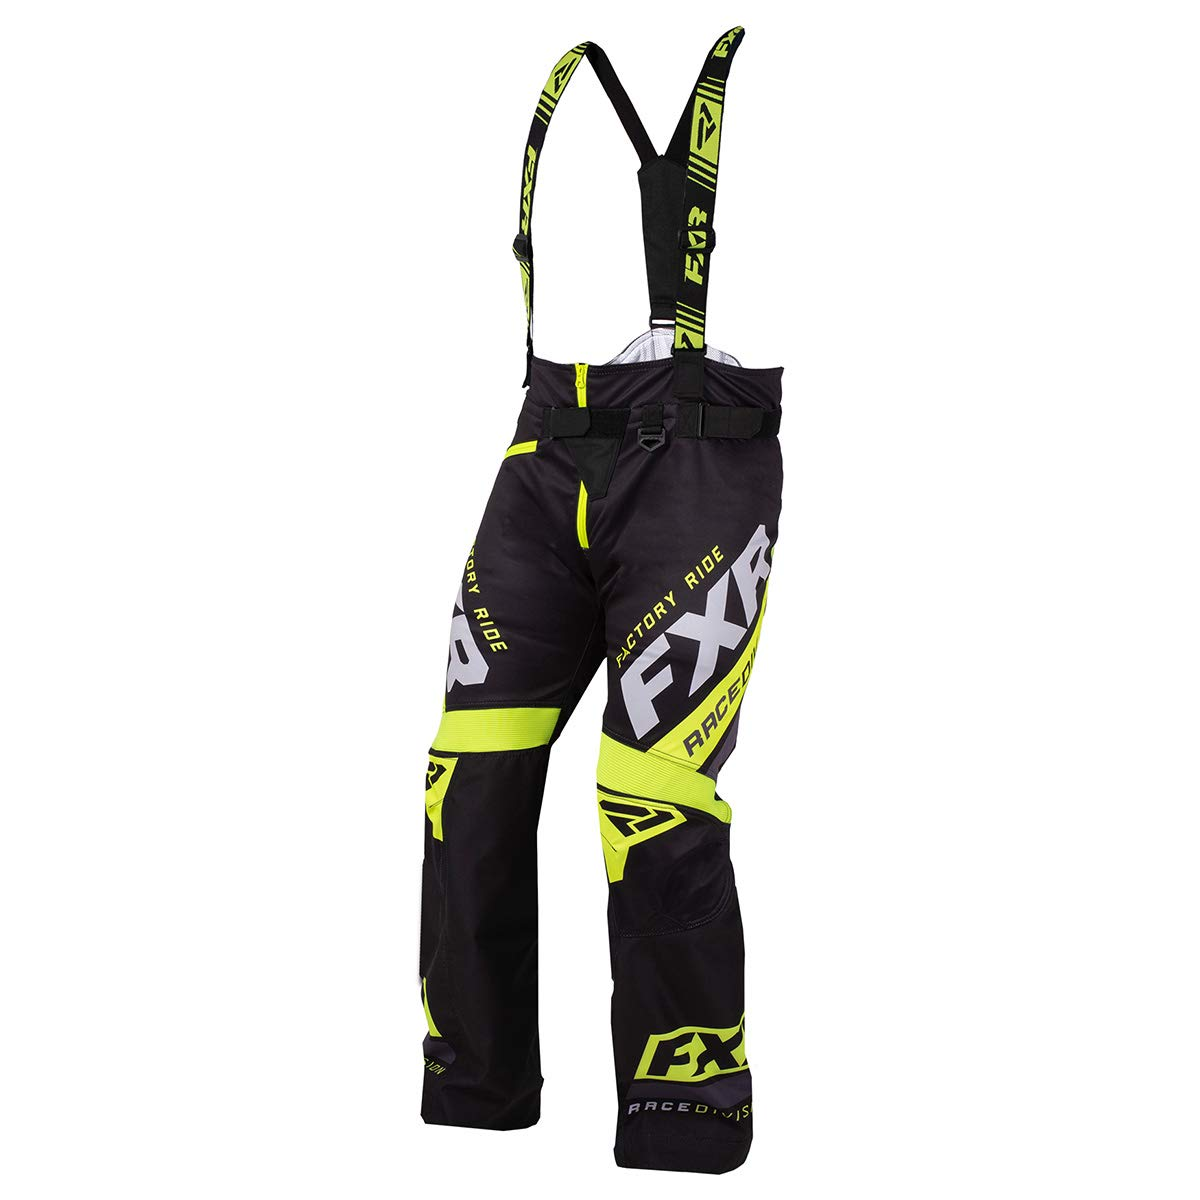 FXR Mens RRX Pant Black//White - Medium